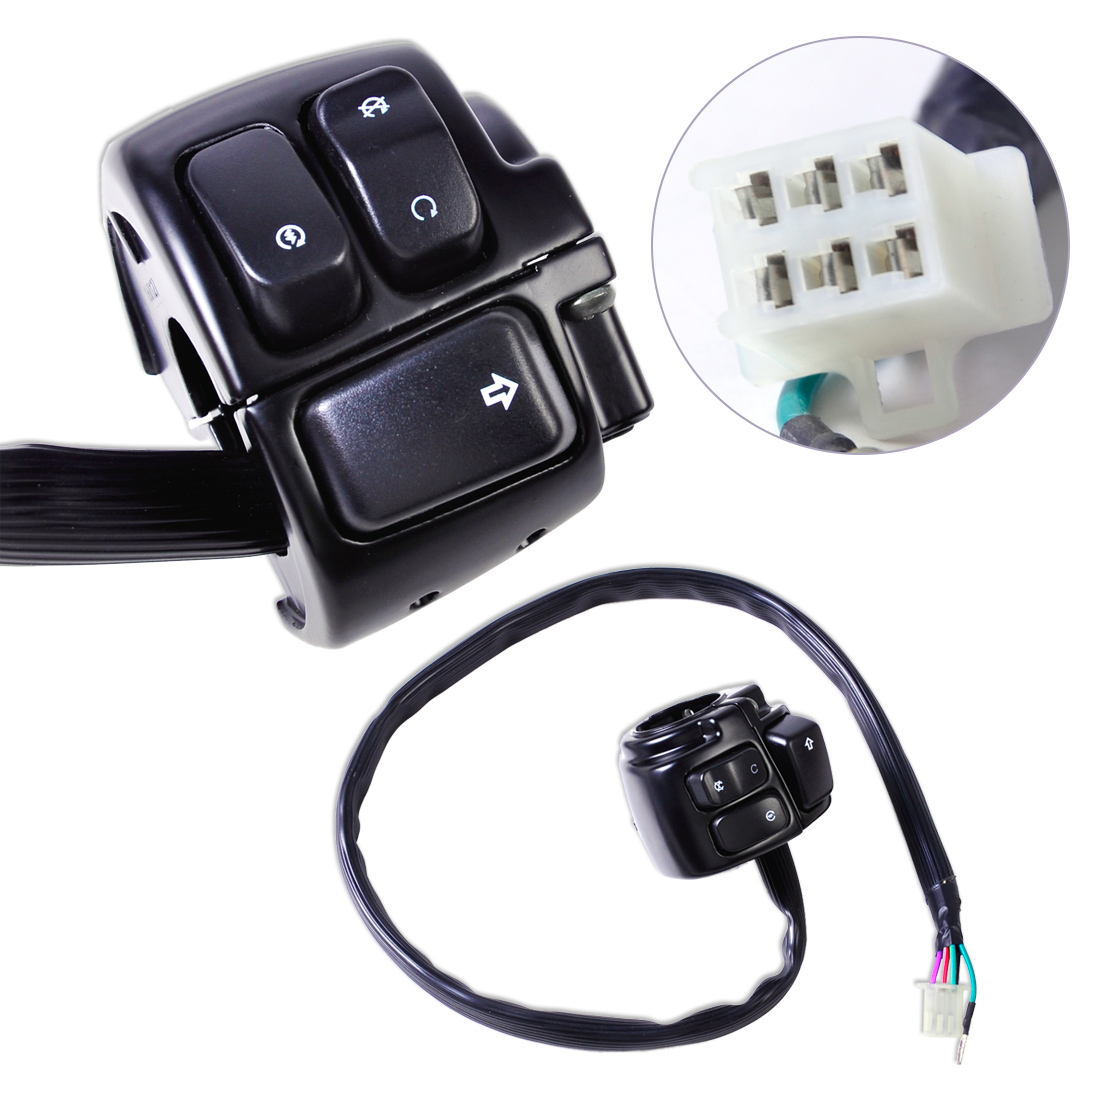 dwcx new motorcycle 1 handlebar ignition kill switch wiring harness for harley davidson softail dyna sportster 1200 883 v rod in motorcycle switches from  [ 1110 x 1110 Pixel ]